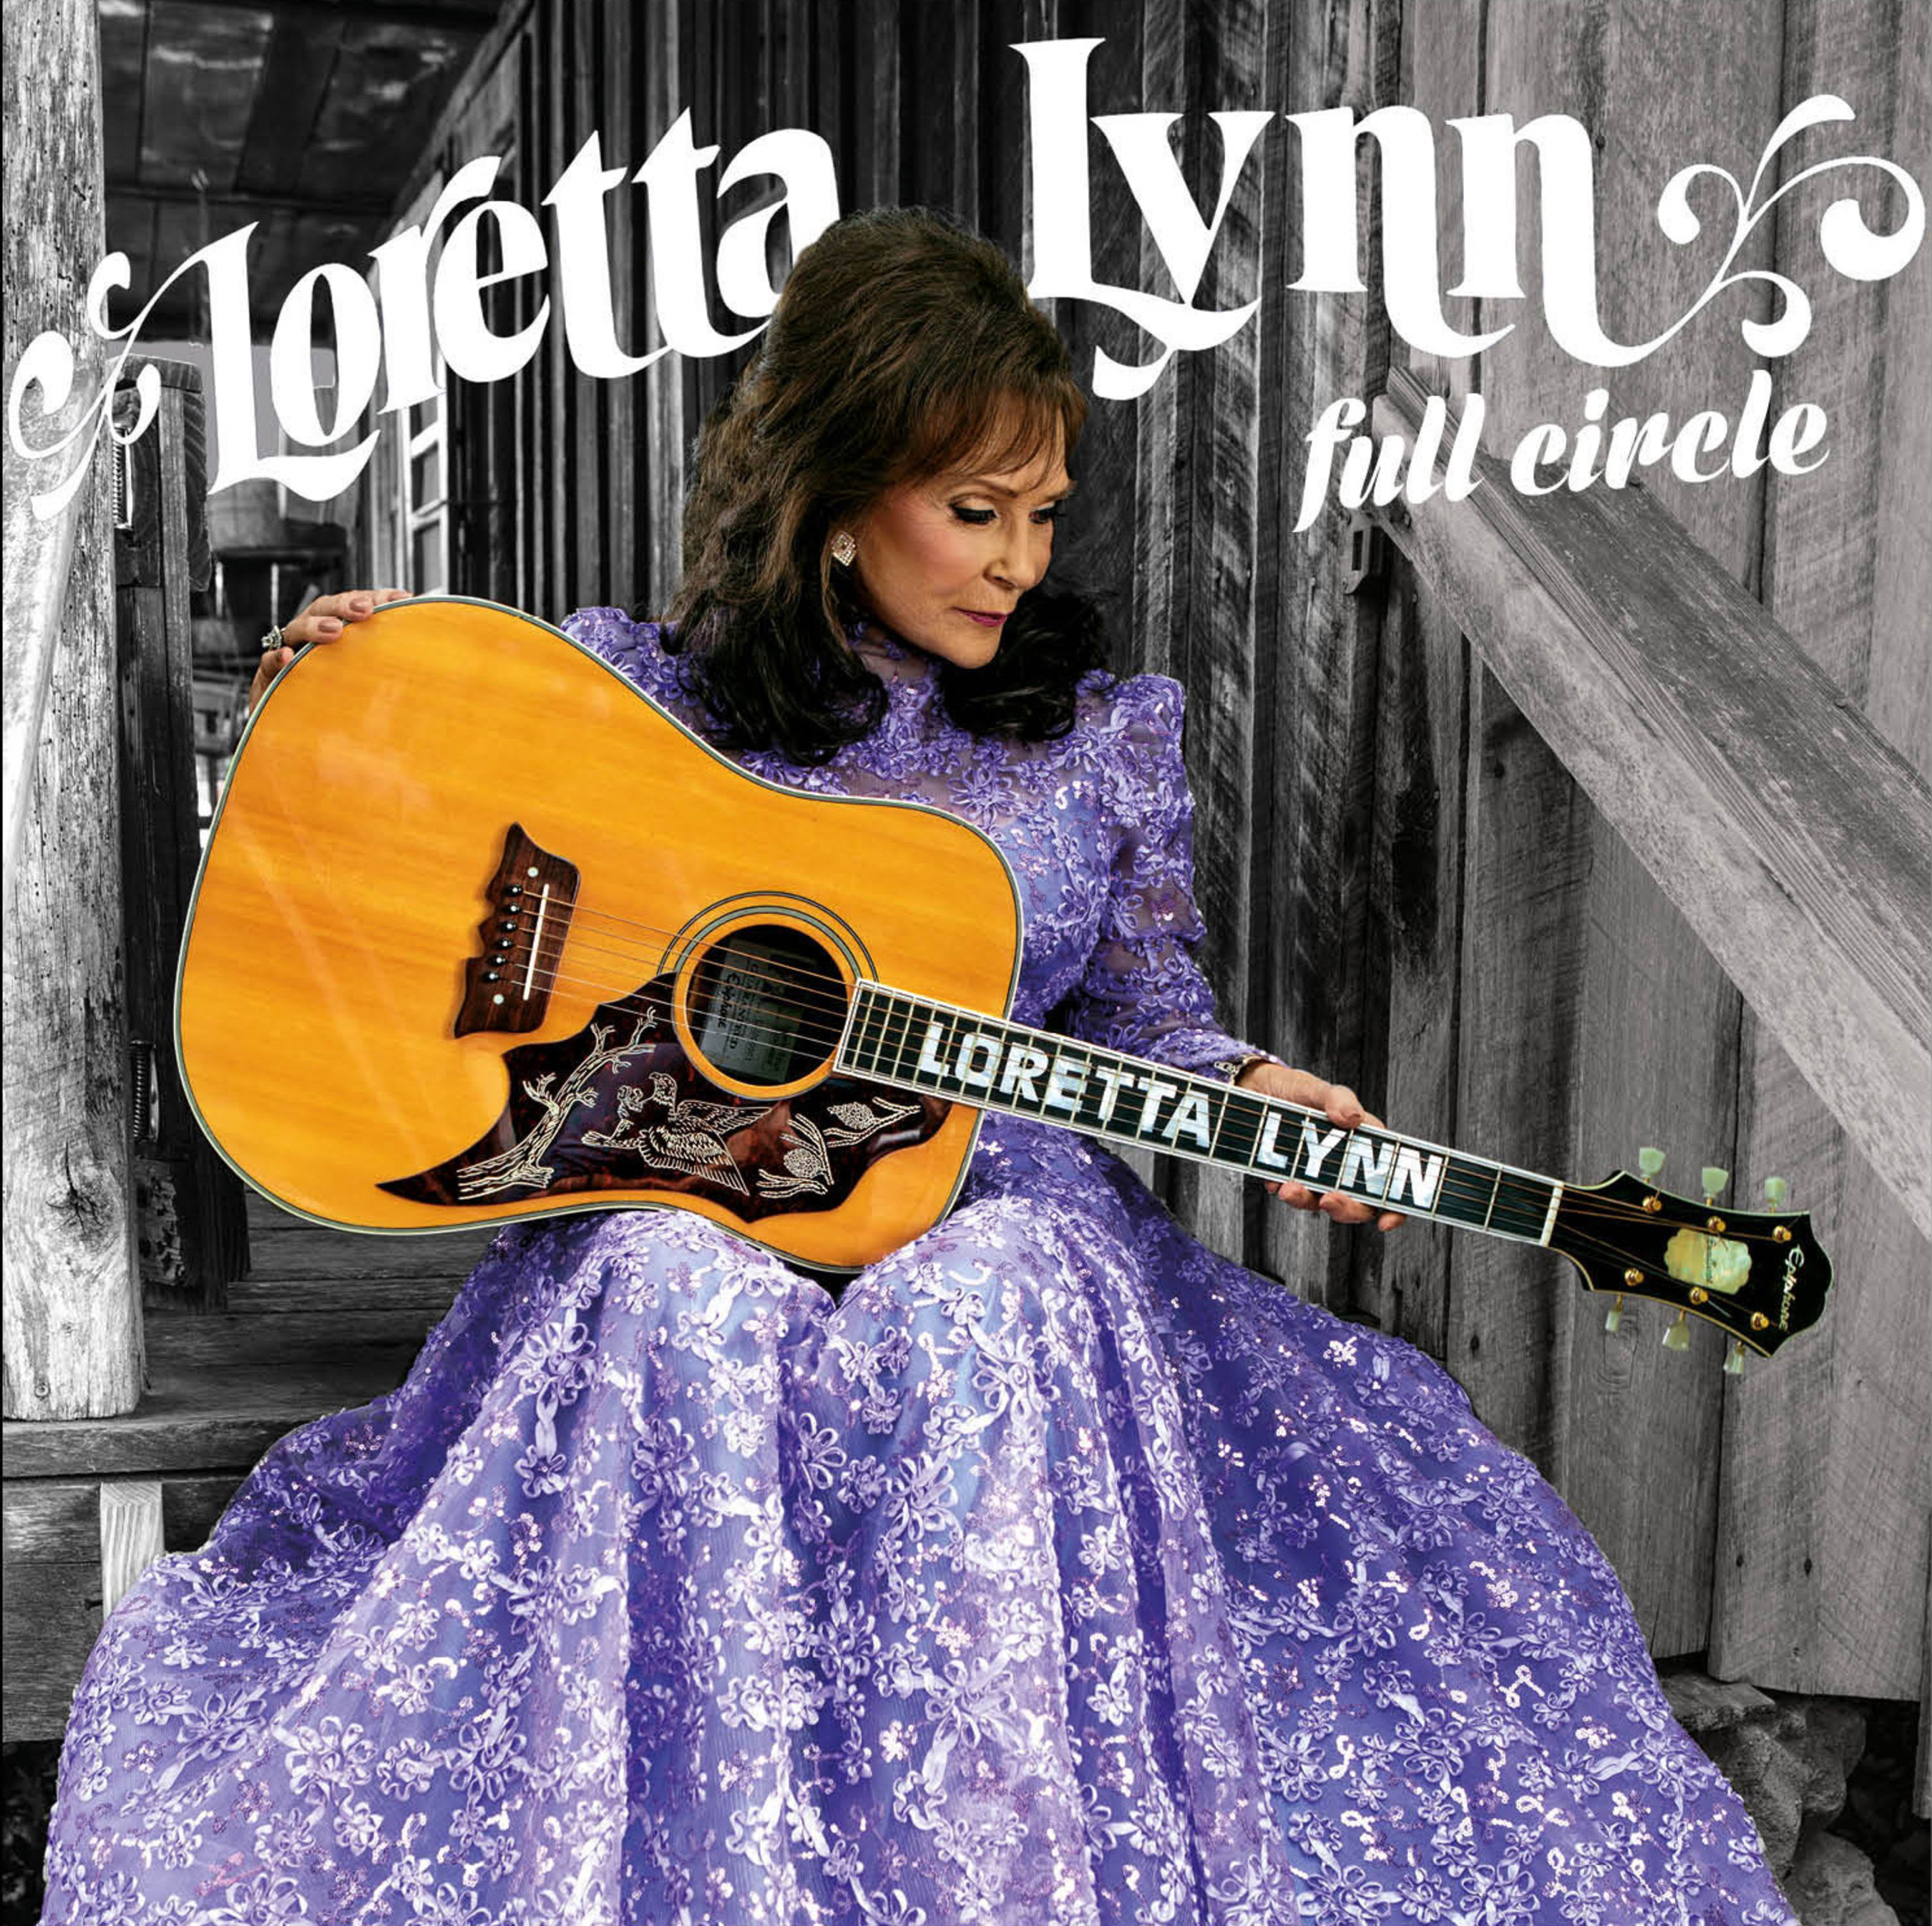 American Music Icon Loretta Lynn Revisits Her Musical Roots On First New Studio Album In Over Ten Years